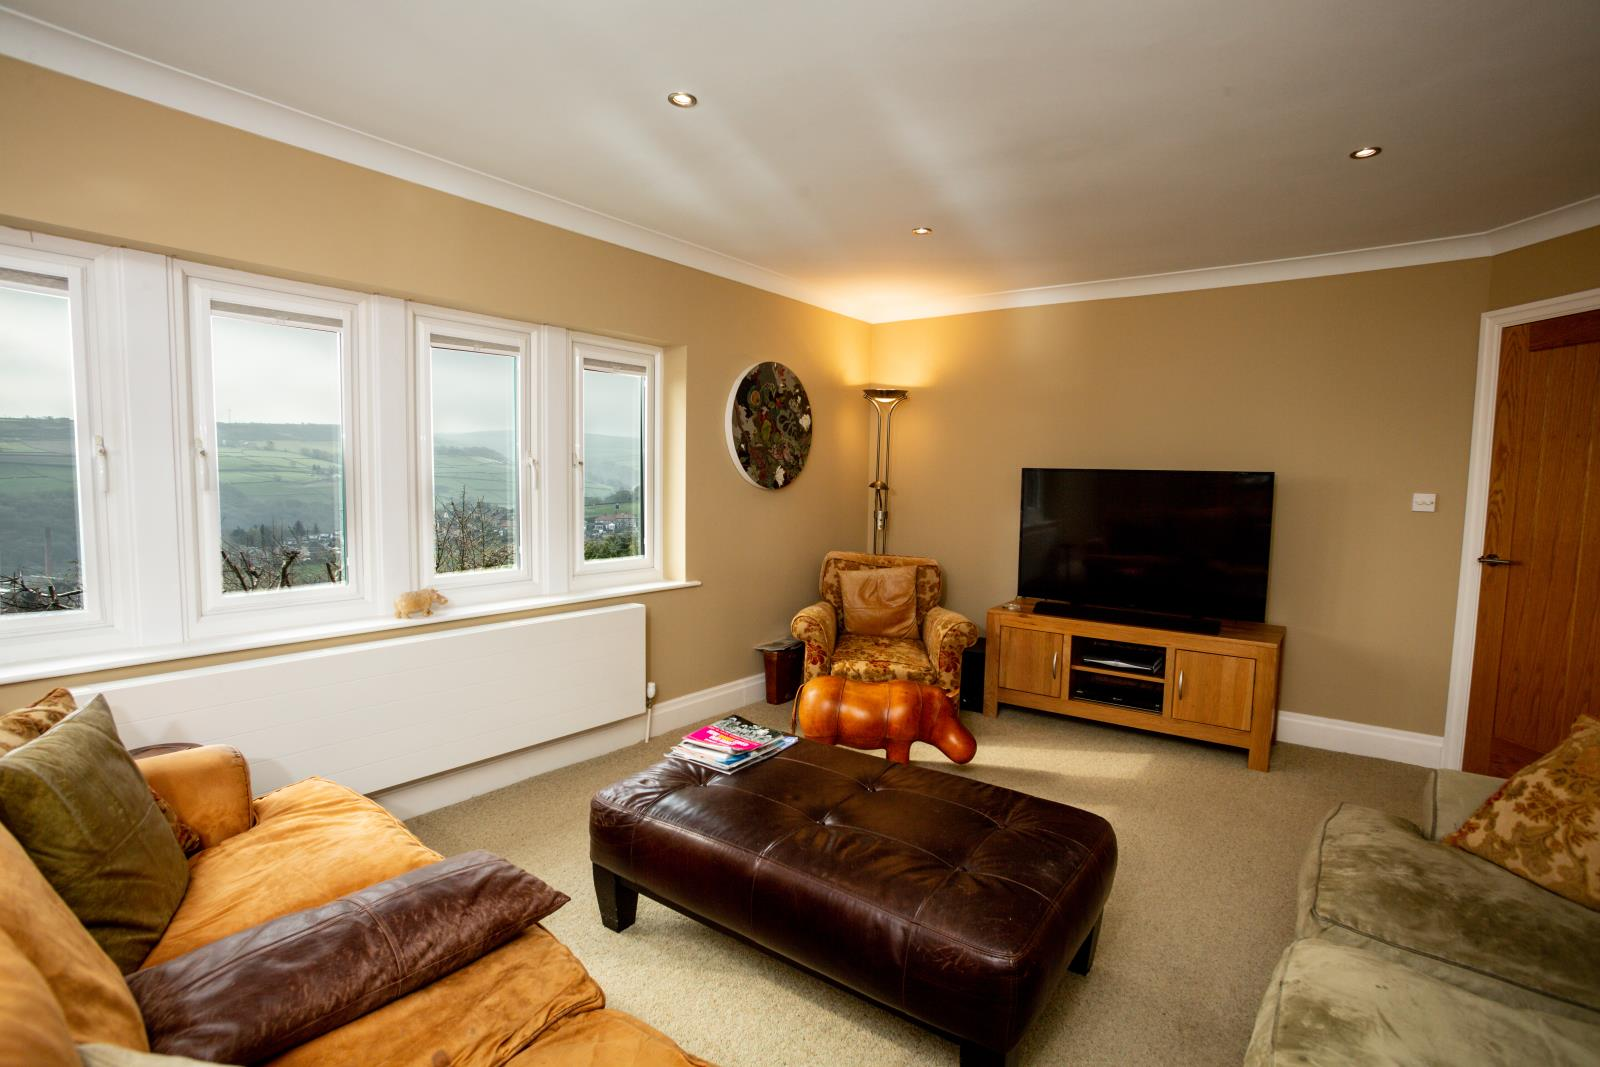 28 Allergill Park, Upperthong, Holmfirth, West Yorkshire HD9 3XH